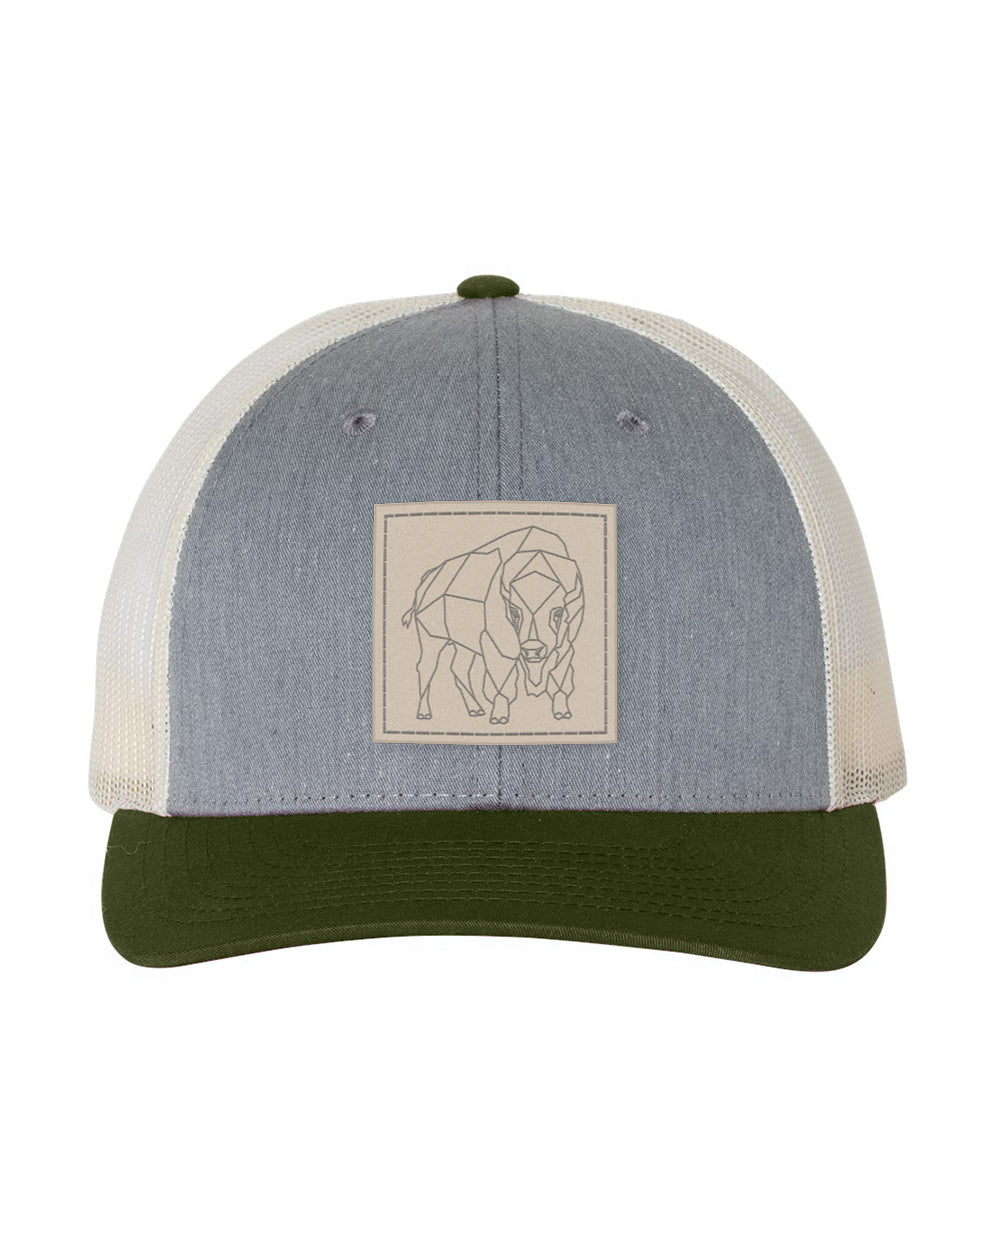 Bison Patch Snapback -  Heather Grey/Birch/Army - Front